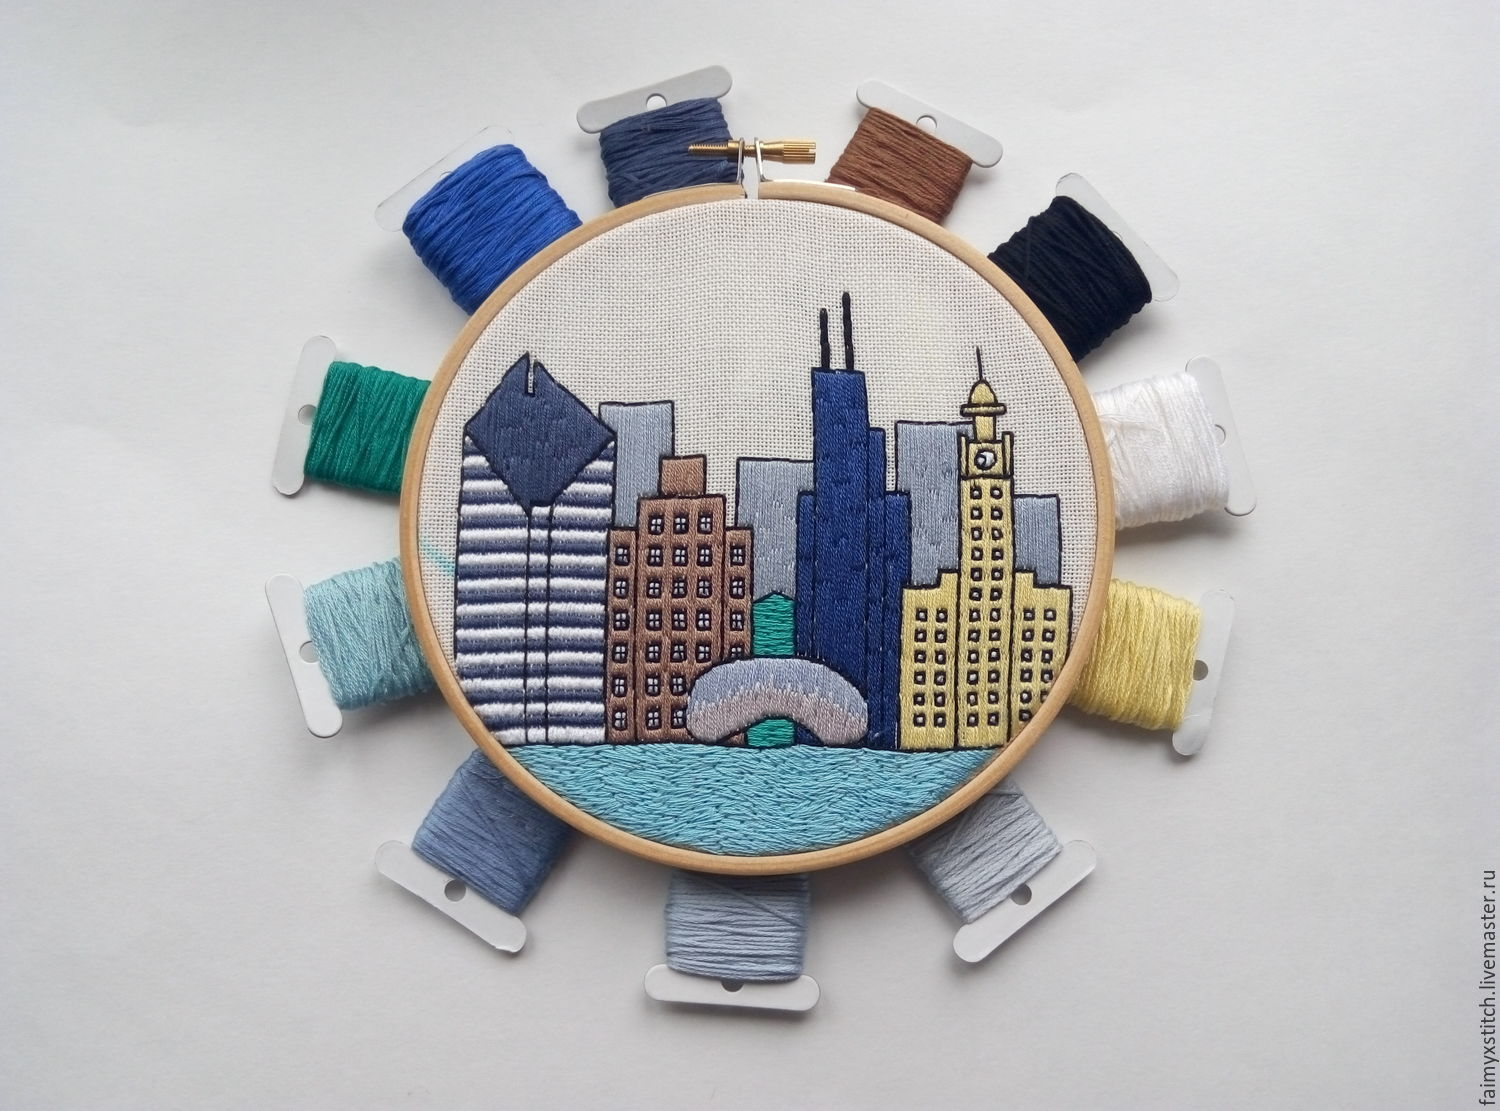 The Scheme For Embroidery Stitch Chicago Shop Online On